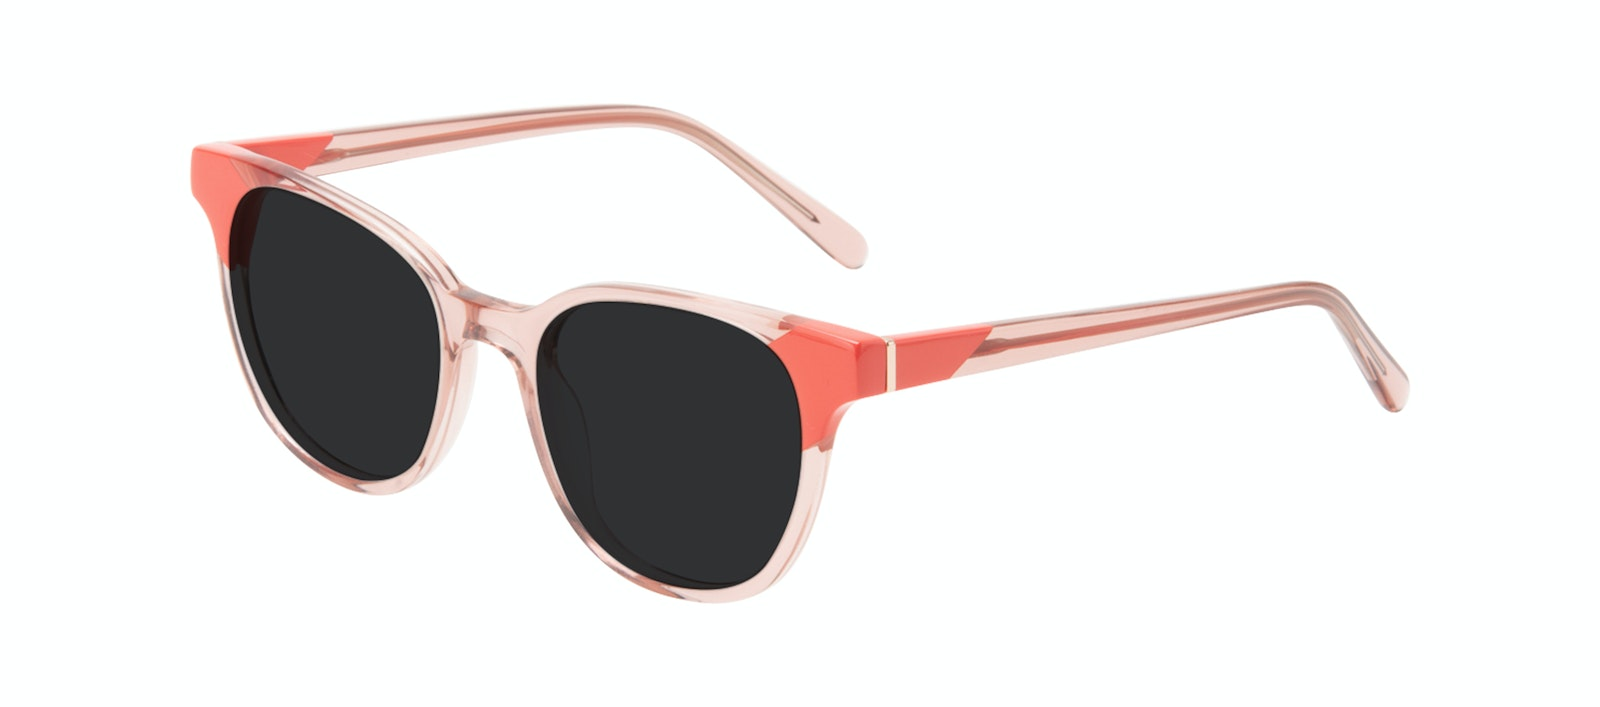 Affordable Fashion Glasses Square Sunglasses Women Lively Pink Coral Tilt